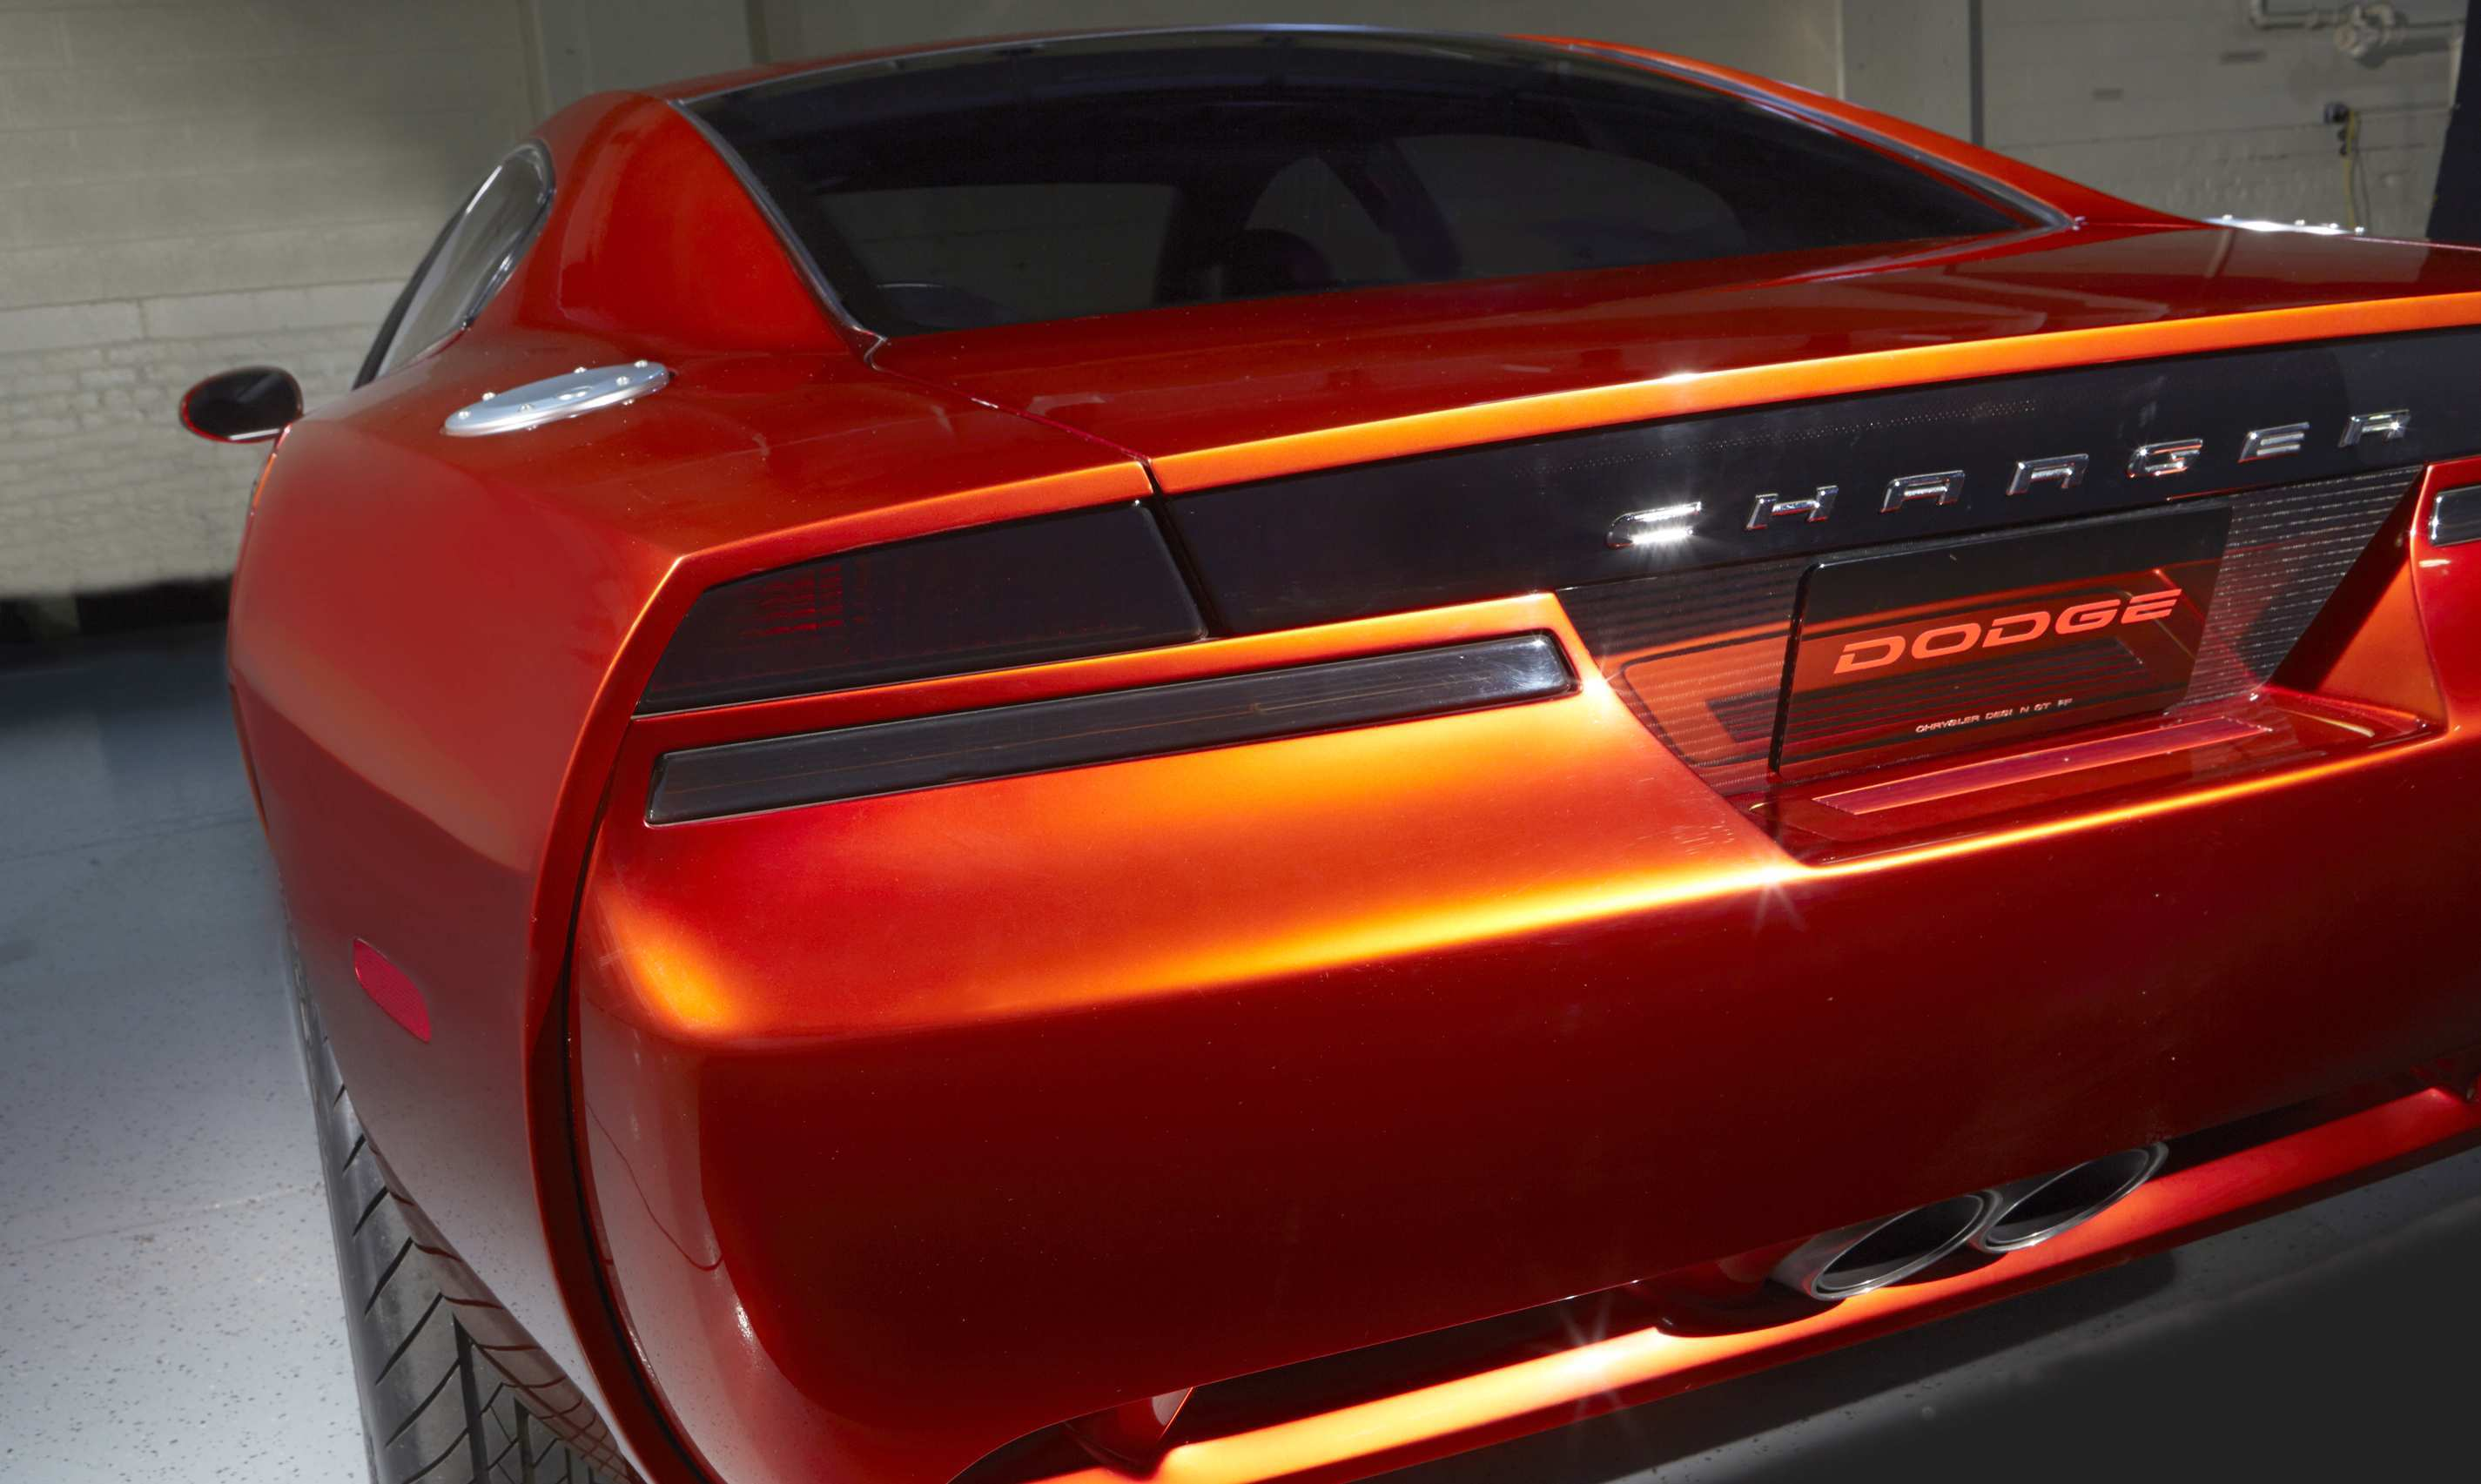 81 All New 2020 Dodge Charger Release Date And Concept